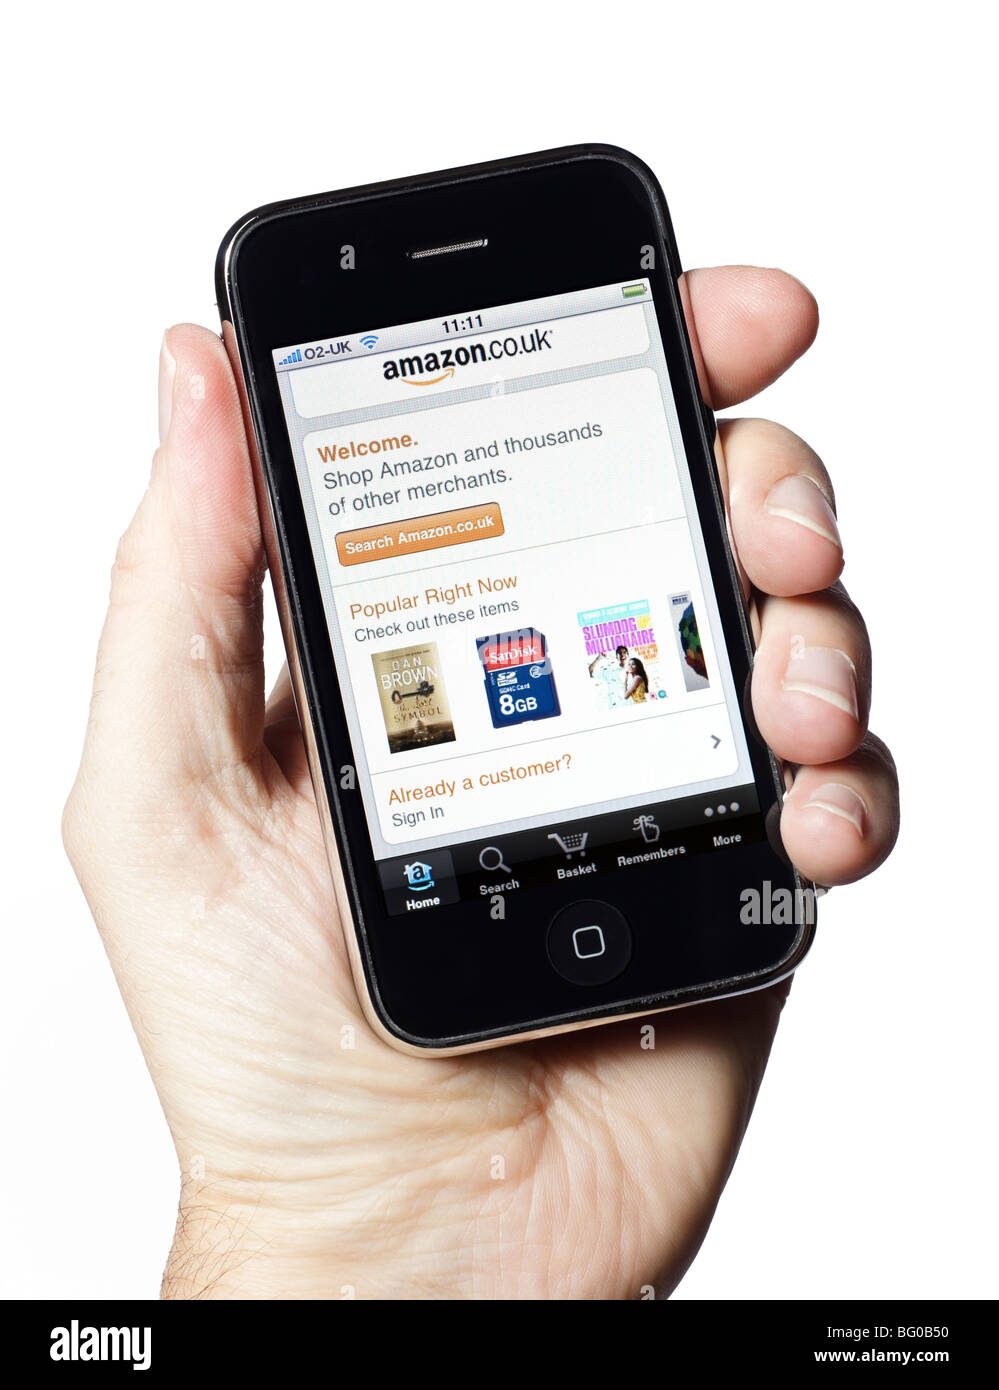 Male hand holding iPhone showing Amazon online shopping application - Stock Image